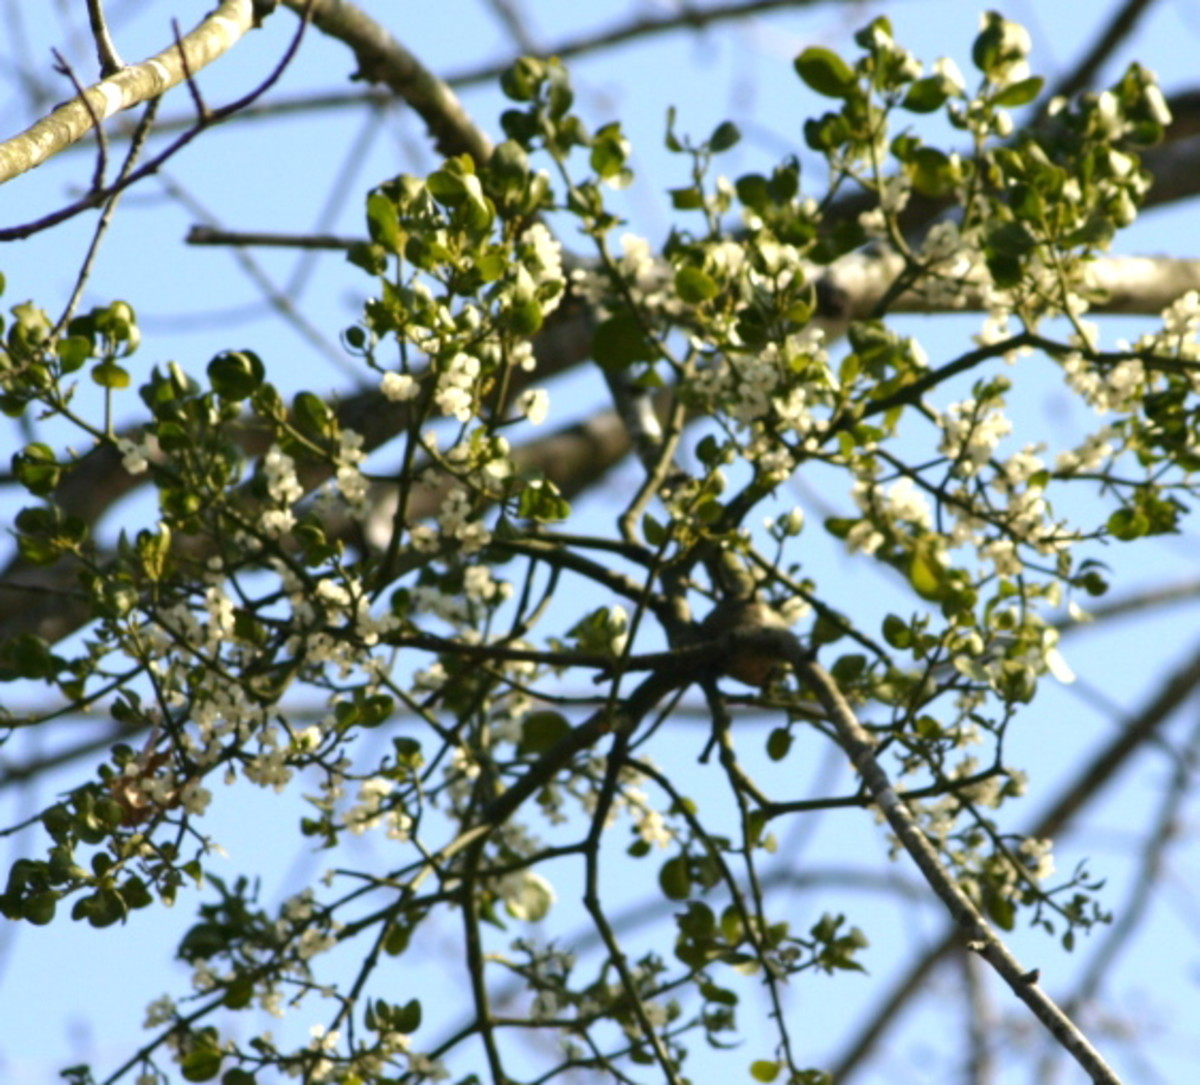 Mistletoe: What is the Meaning of Mistletoe?